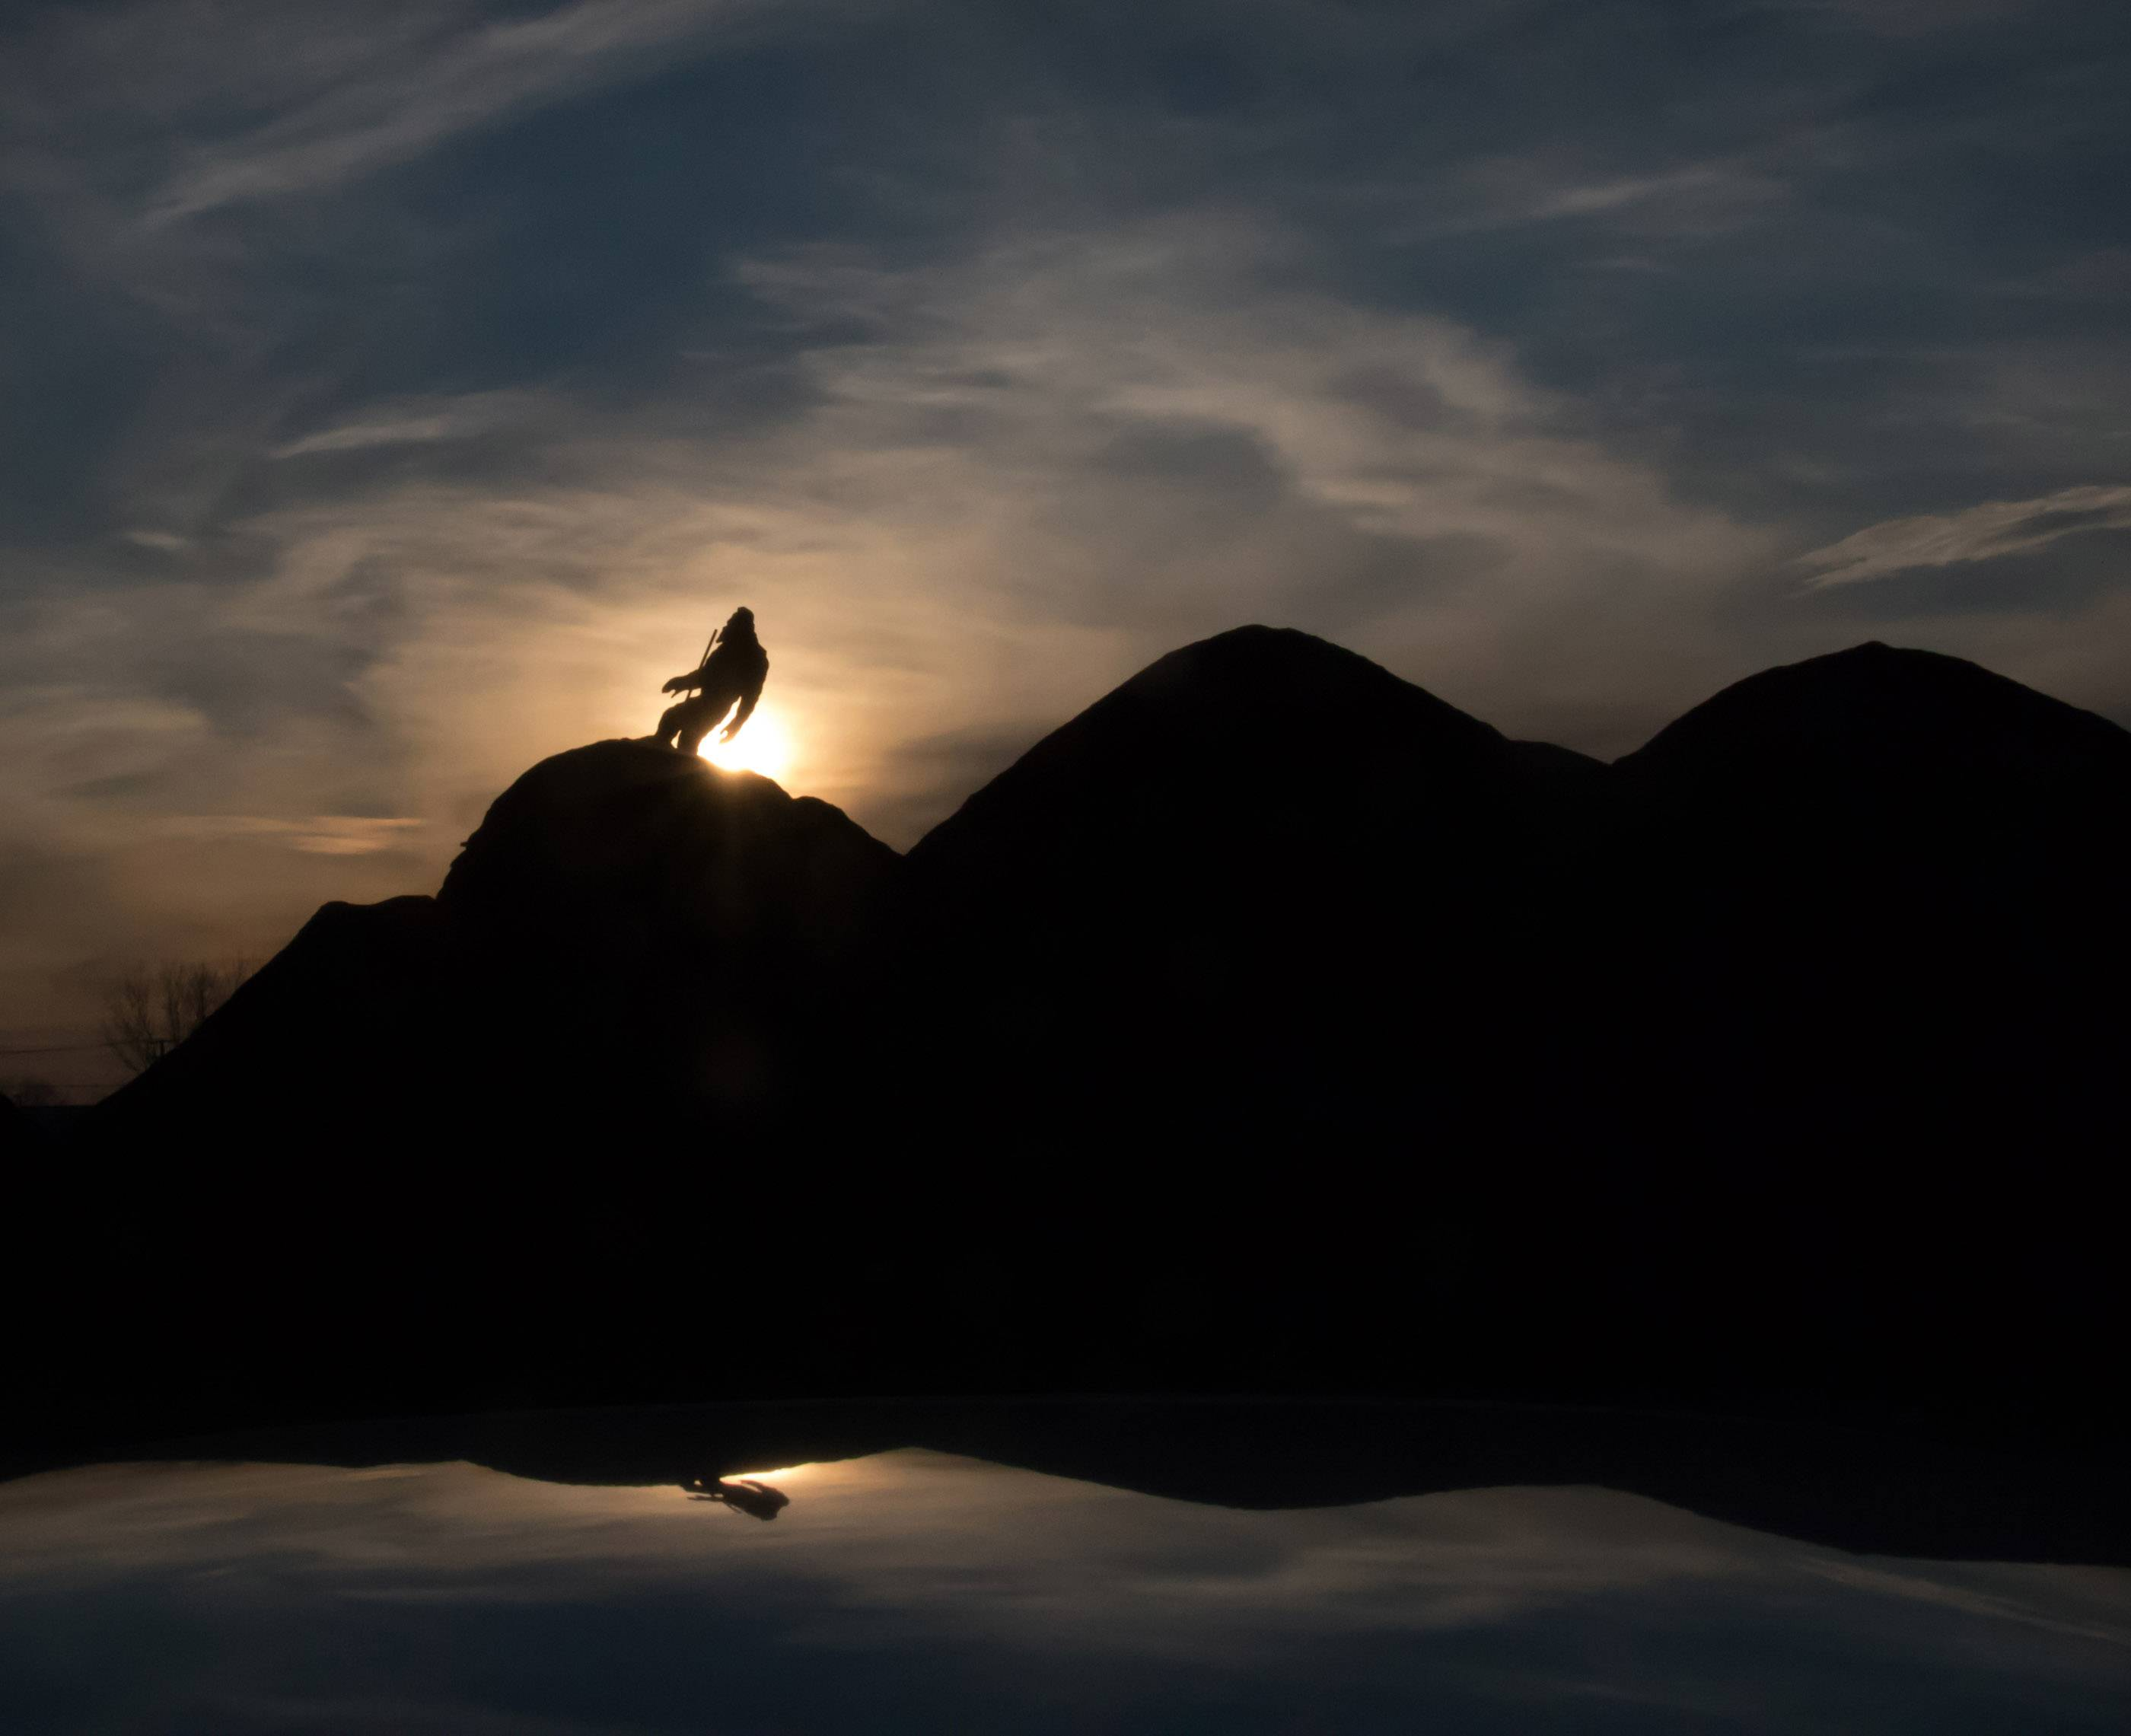 A figure appears on top of a mulch pile on Higgins Road at sunset, as reflected on the hood of a car.